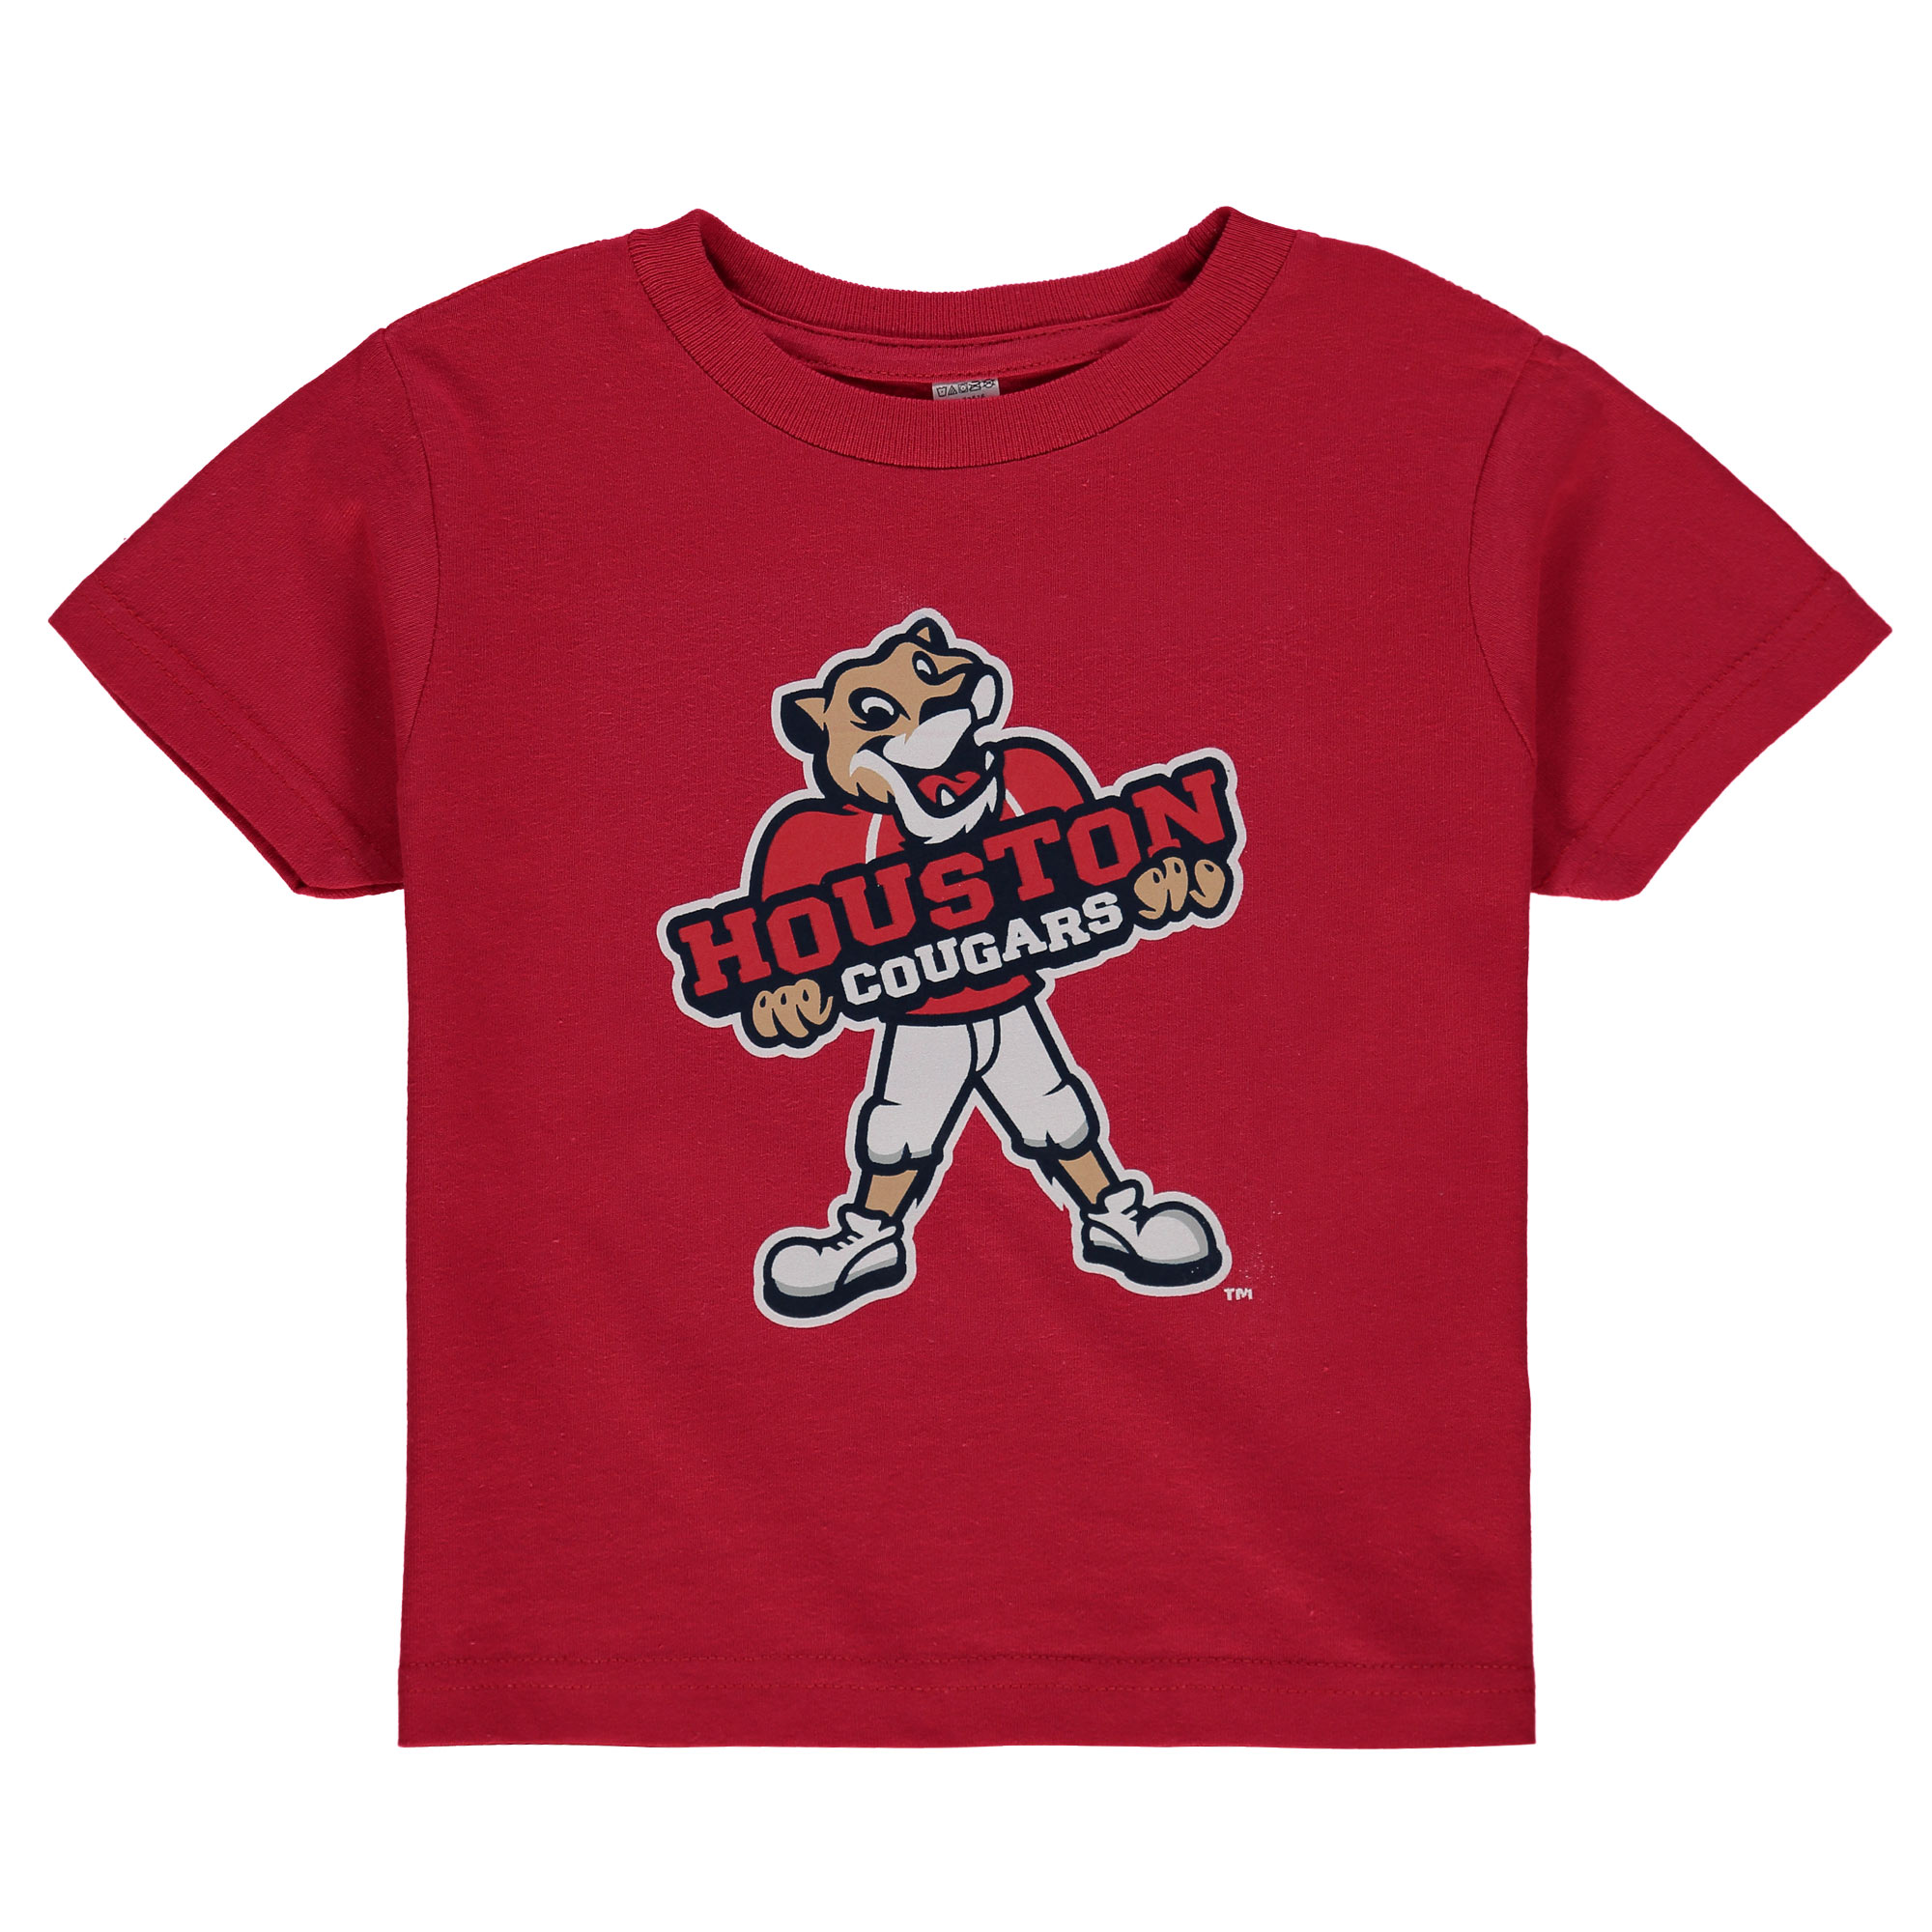 Big Red W: Houston Cougars Toddler Big Logo T-Shirt